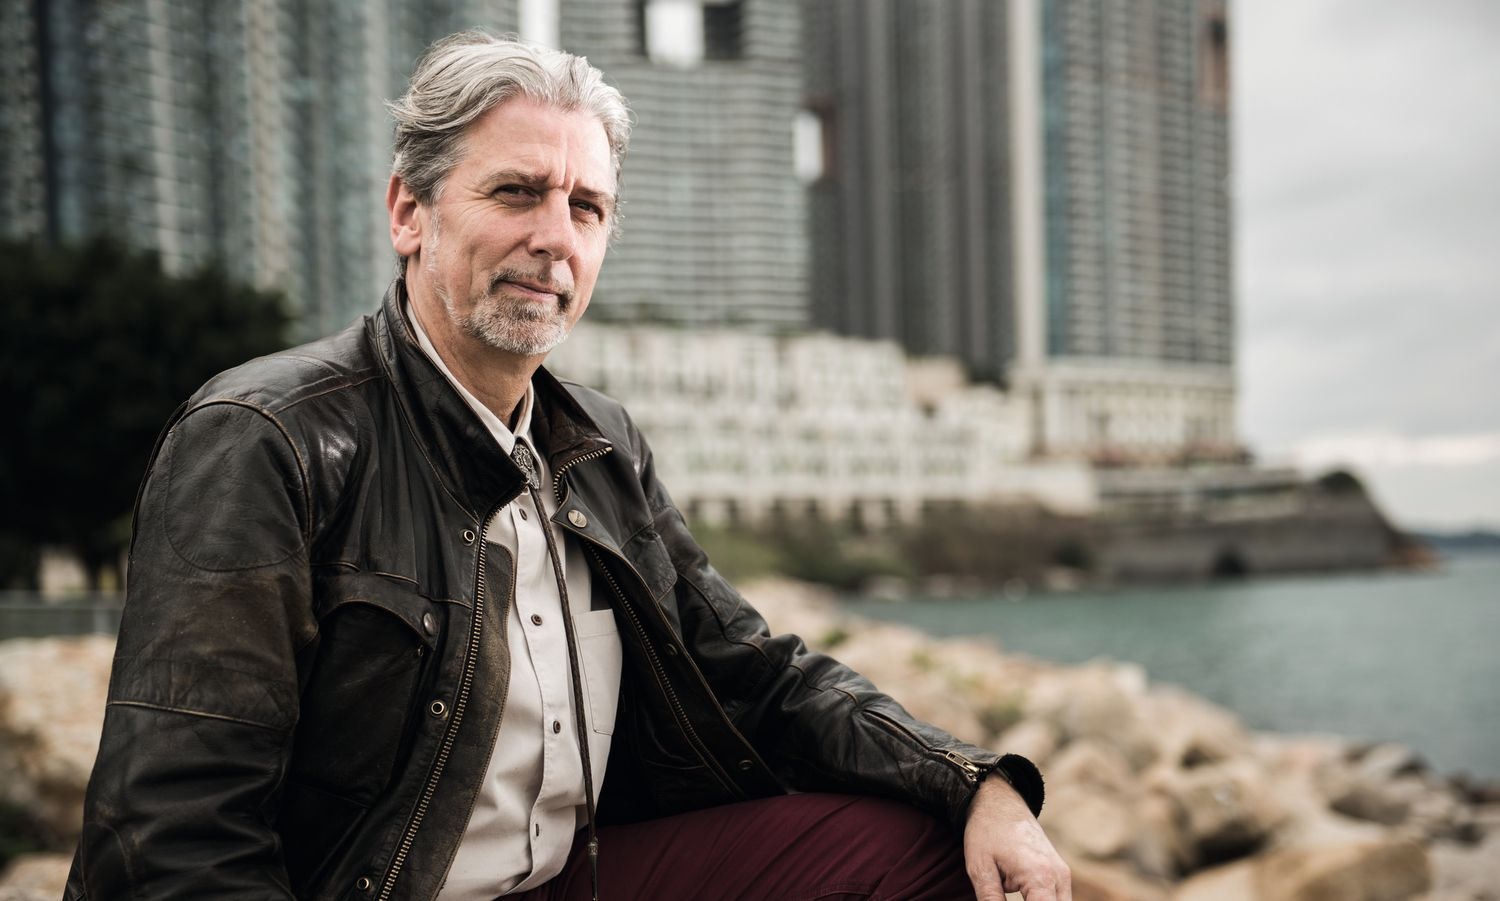 Paul Zimmerman On The Biggest Challenge Hong Kong Faces Today